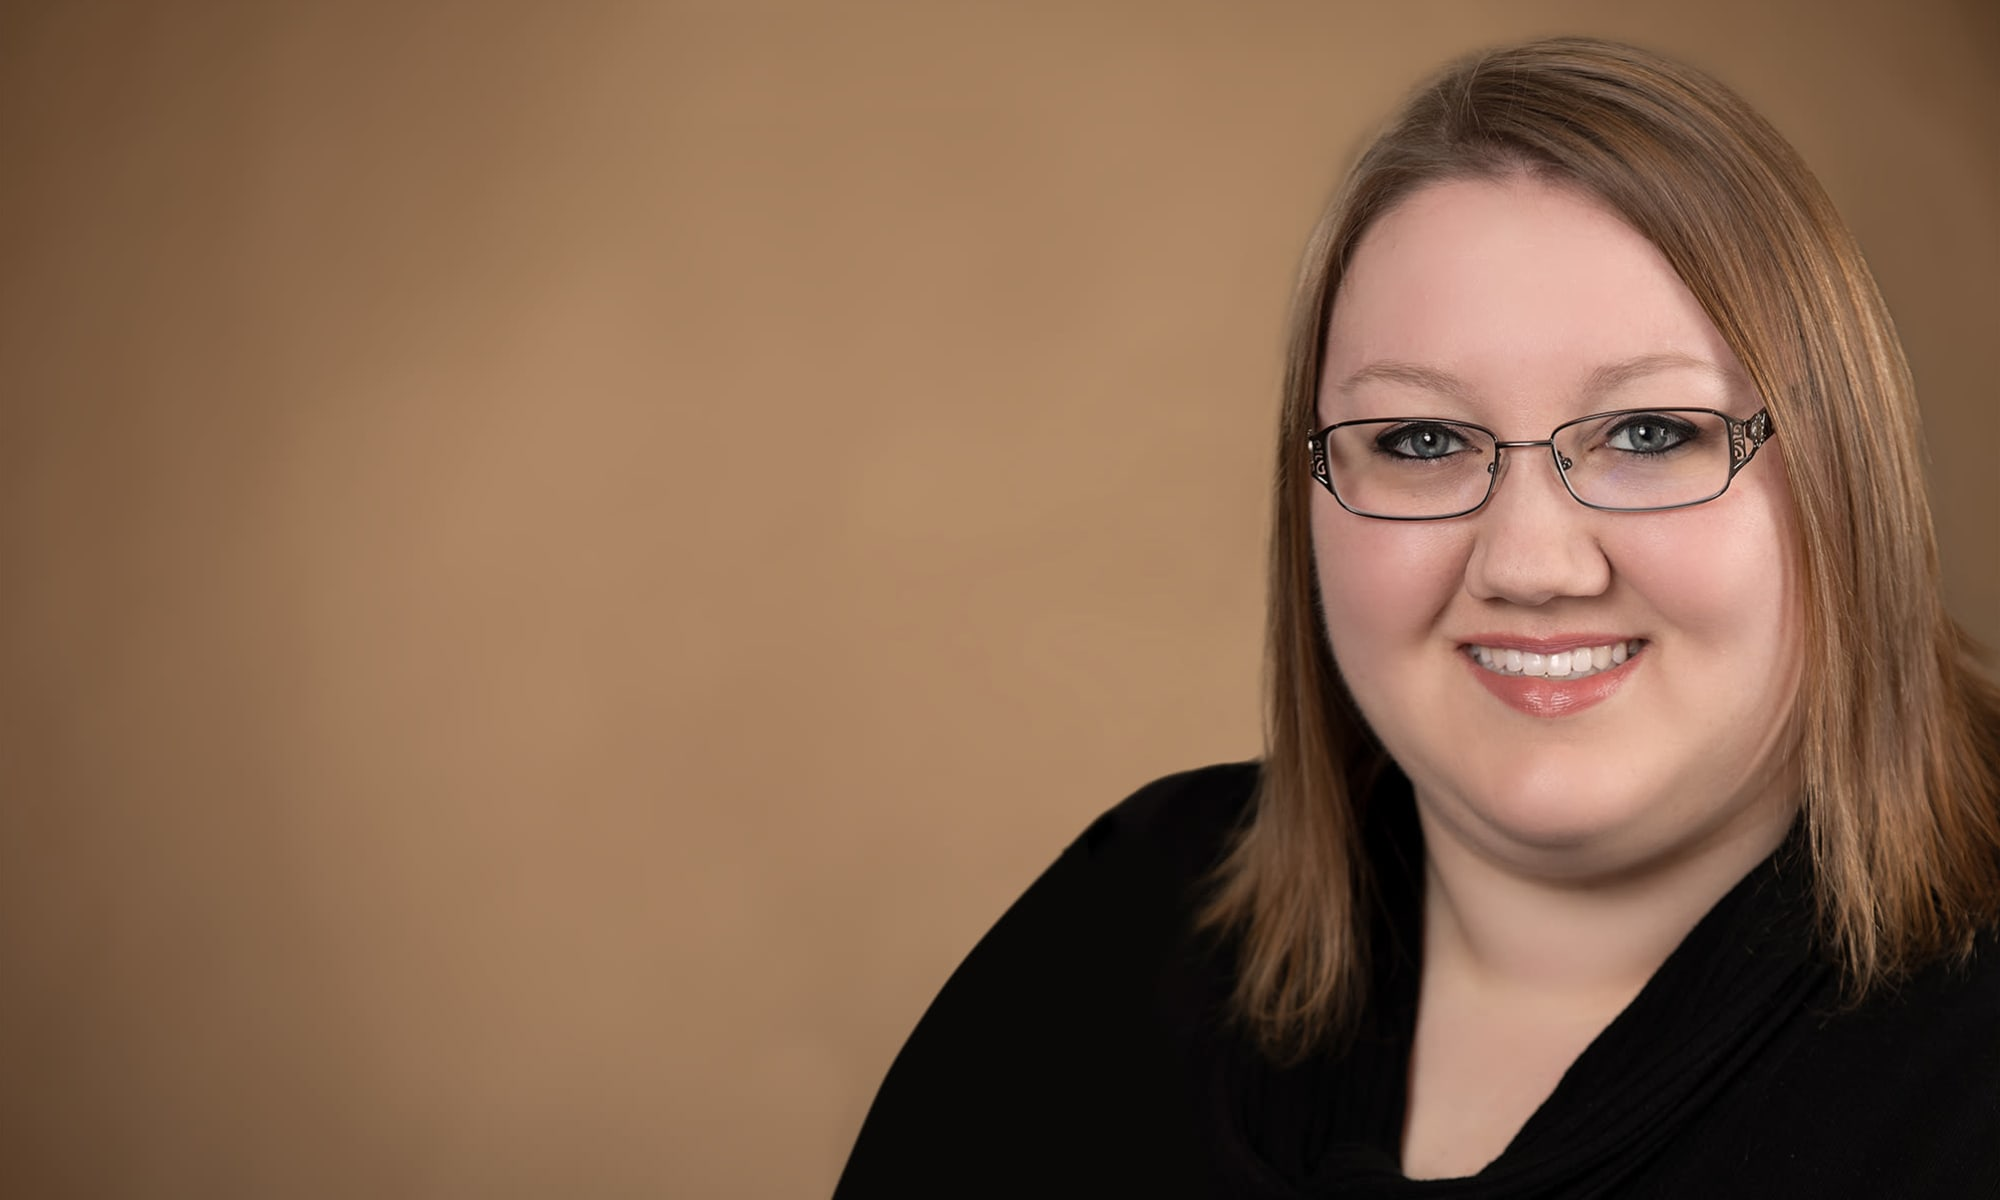 Stephanie Buchanan, Executive Director at Touchmark on West Prospect in Appleton, Wisconsin